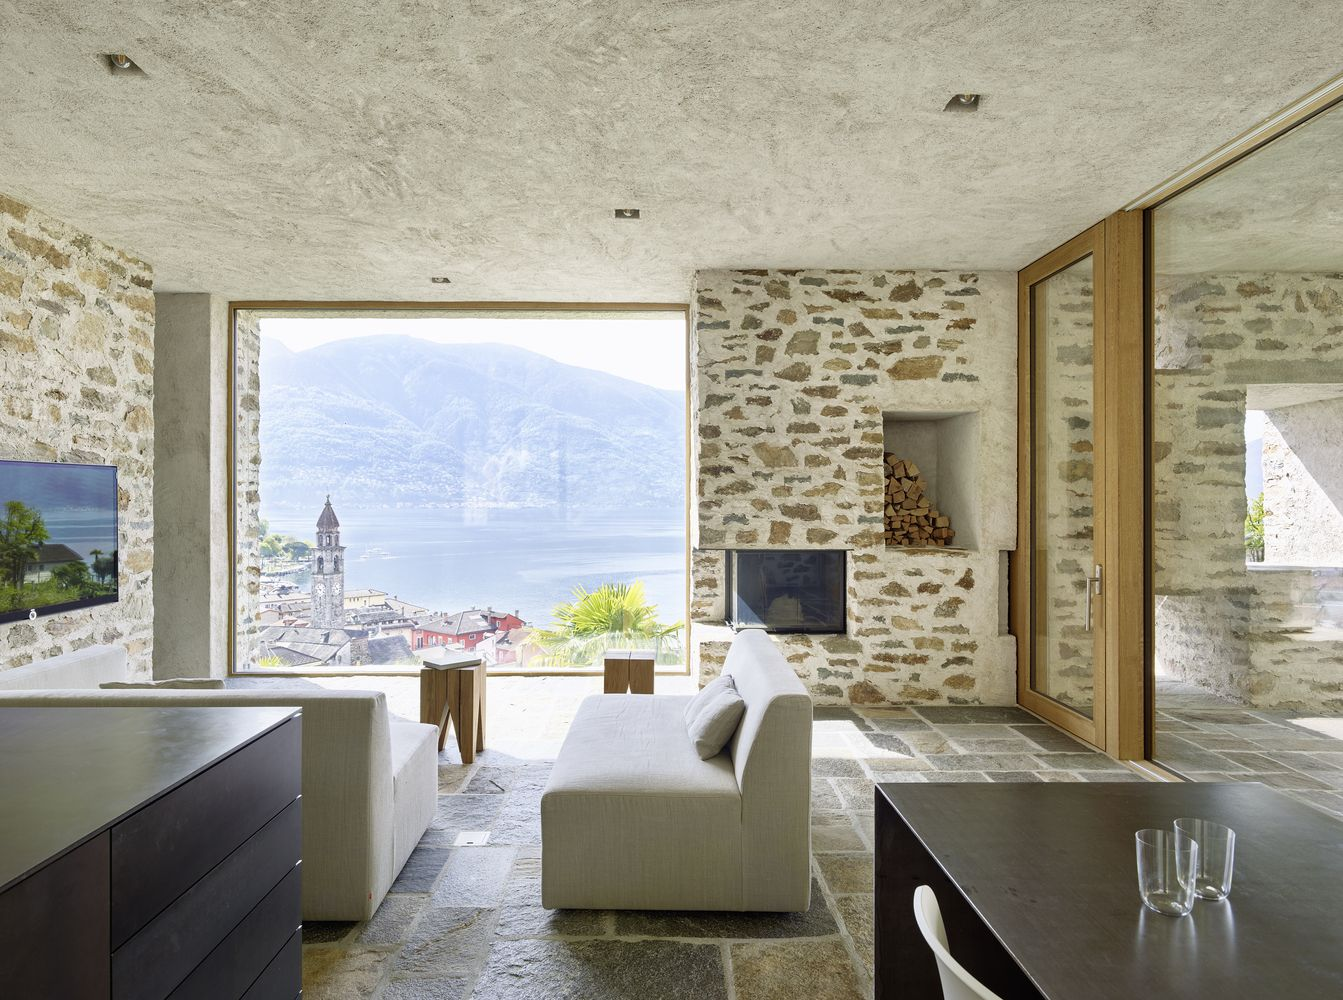 Romeo Architecture D'interieur Gallery Of Remodel House In Ascona Wespi De Meuron Romeo